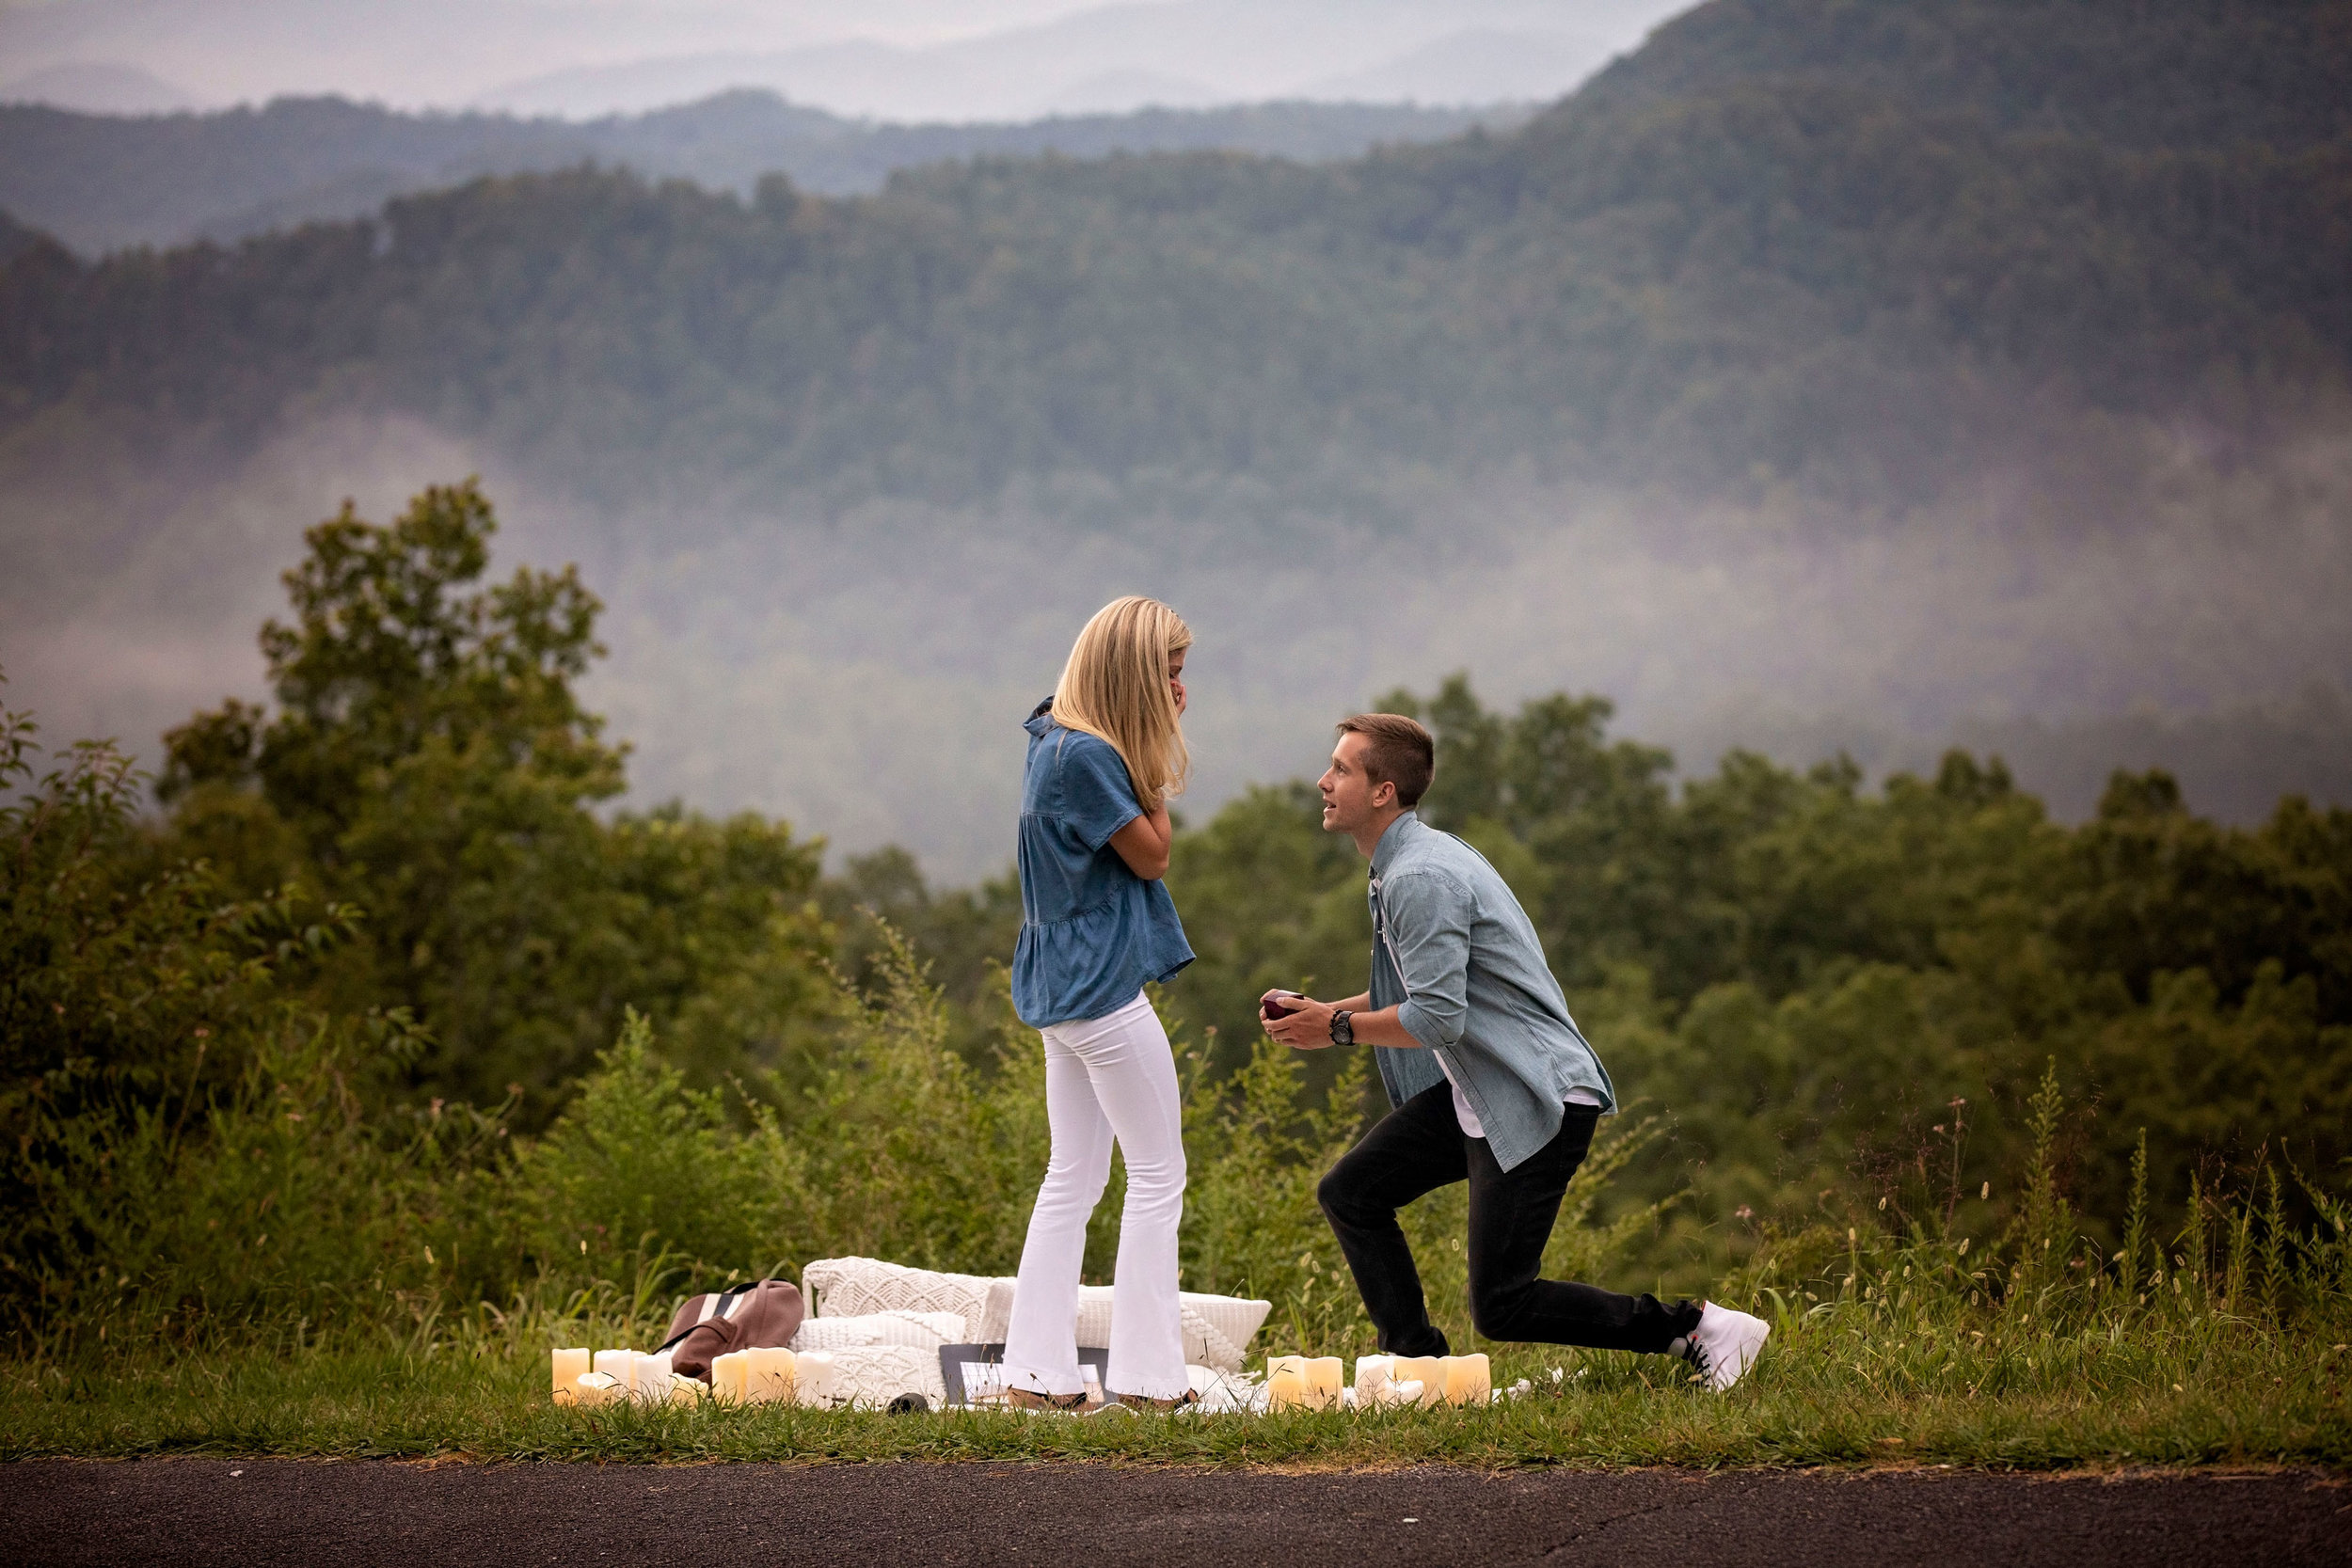 Smoky-mountain-proposal.jpg